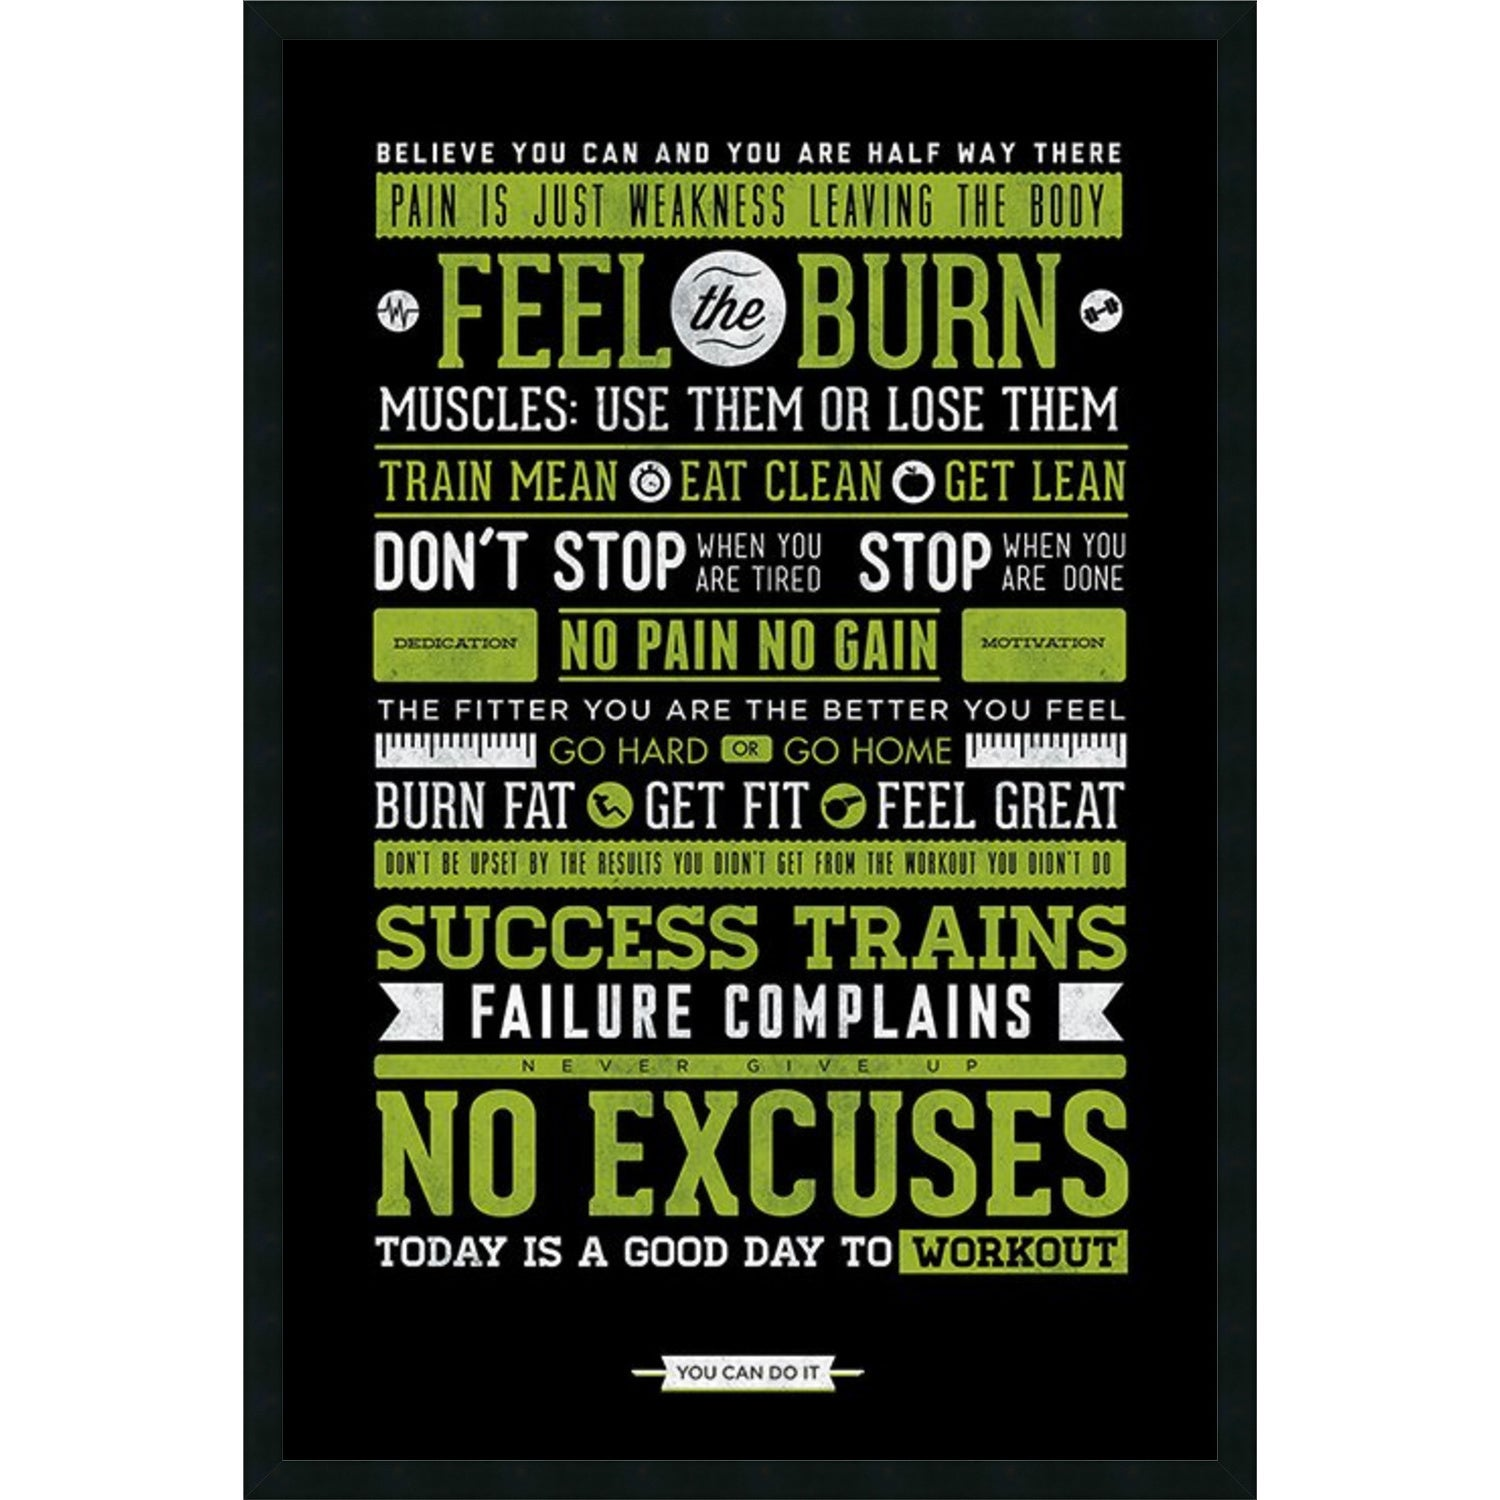 Framed art print gym motivational 26 x 38 inch free shipping framed art print gym motivational 26 x 38 inch free shipping today overstock 17626580 jeuxipadfo Image collections